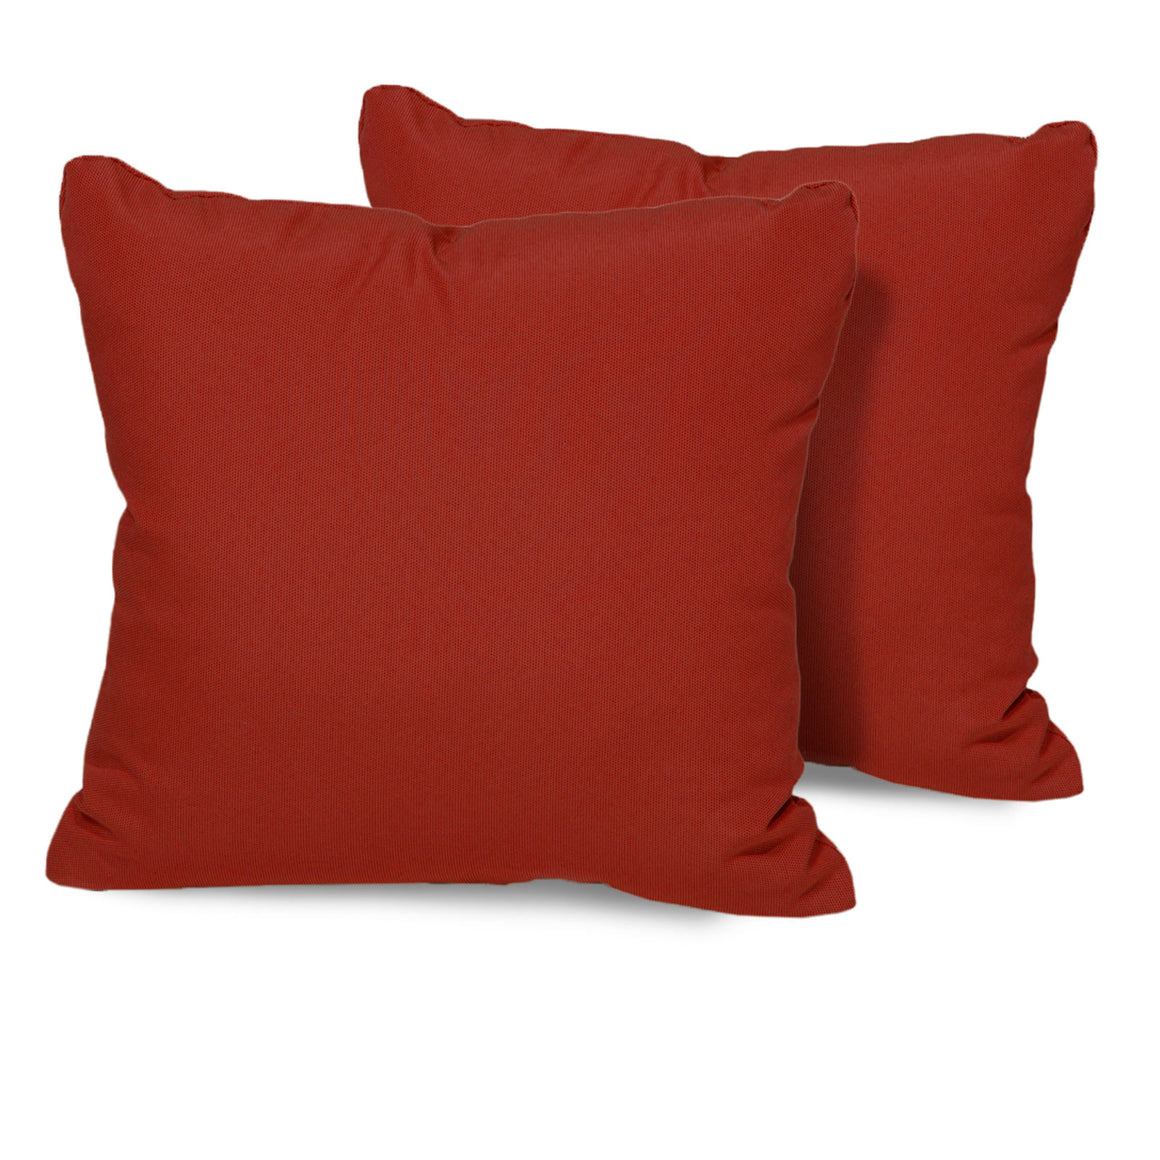 Terracotta Outdoor Throw Pillows Square Set of 2 , TK Classics- grayburd